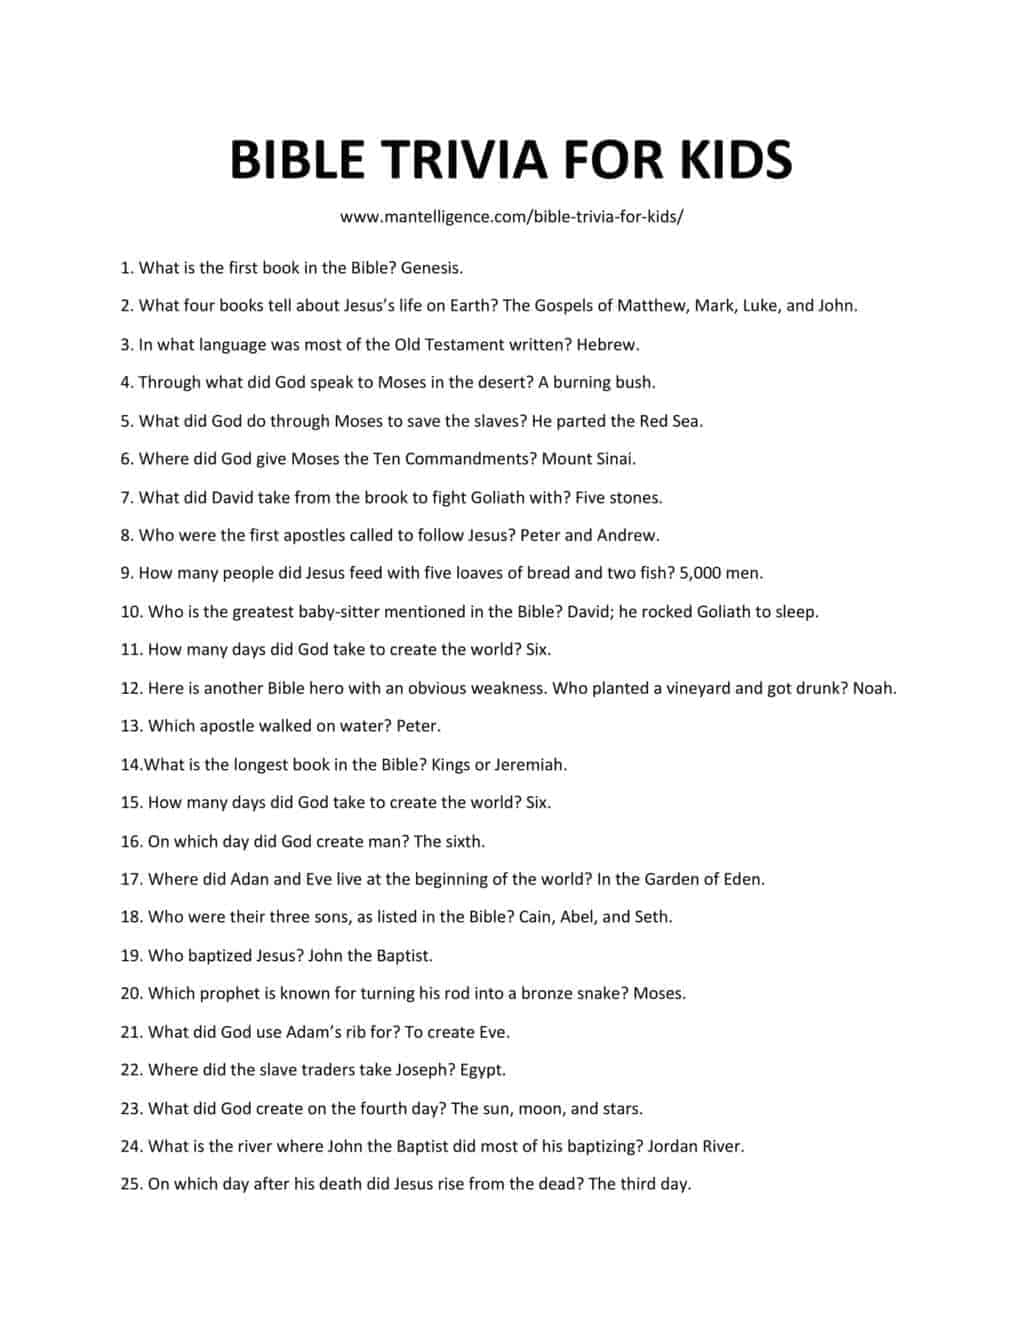 Downloadable and Printable list of bible trivia for kids as jpg or pdf